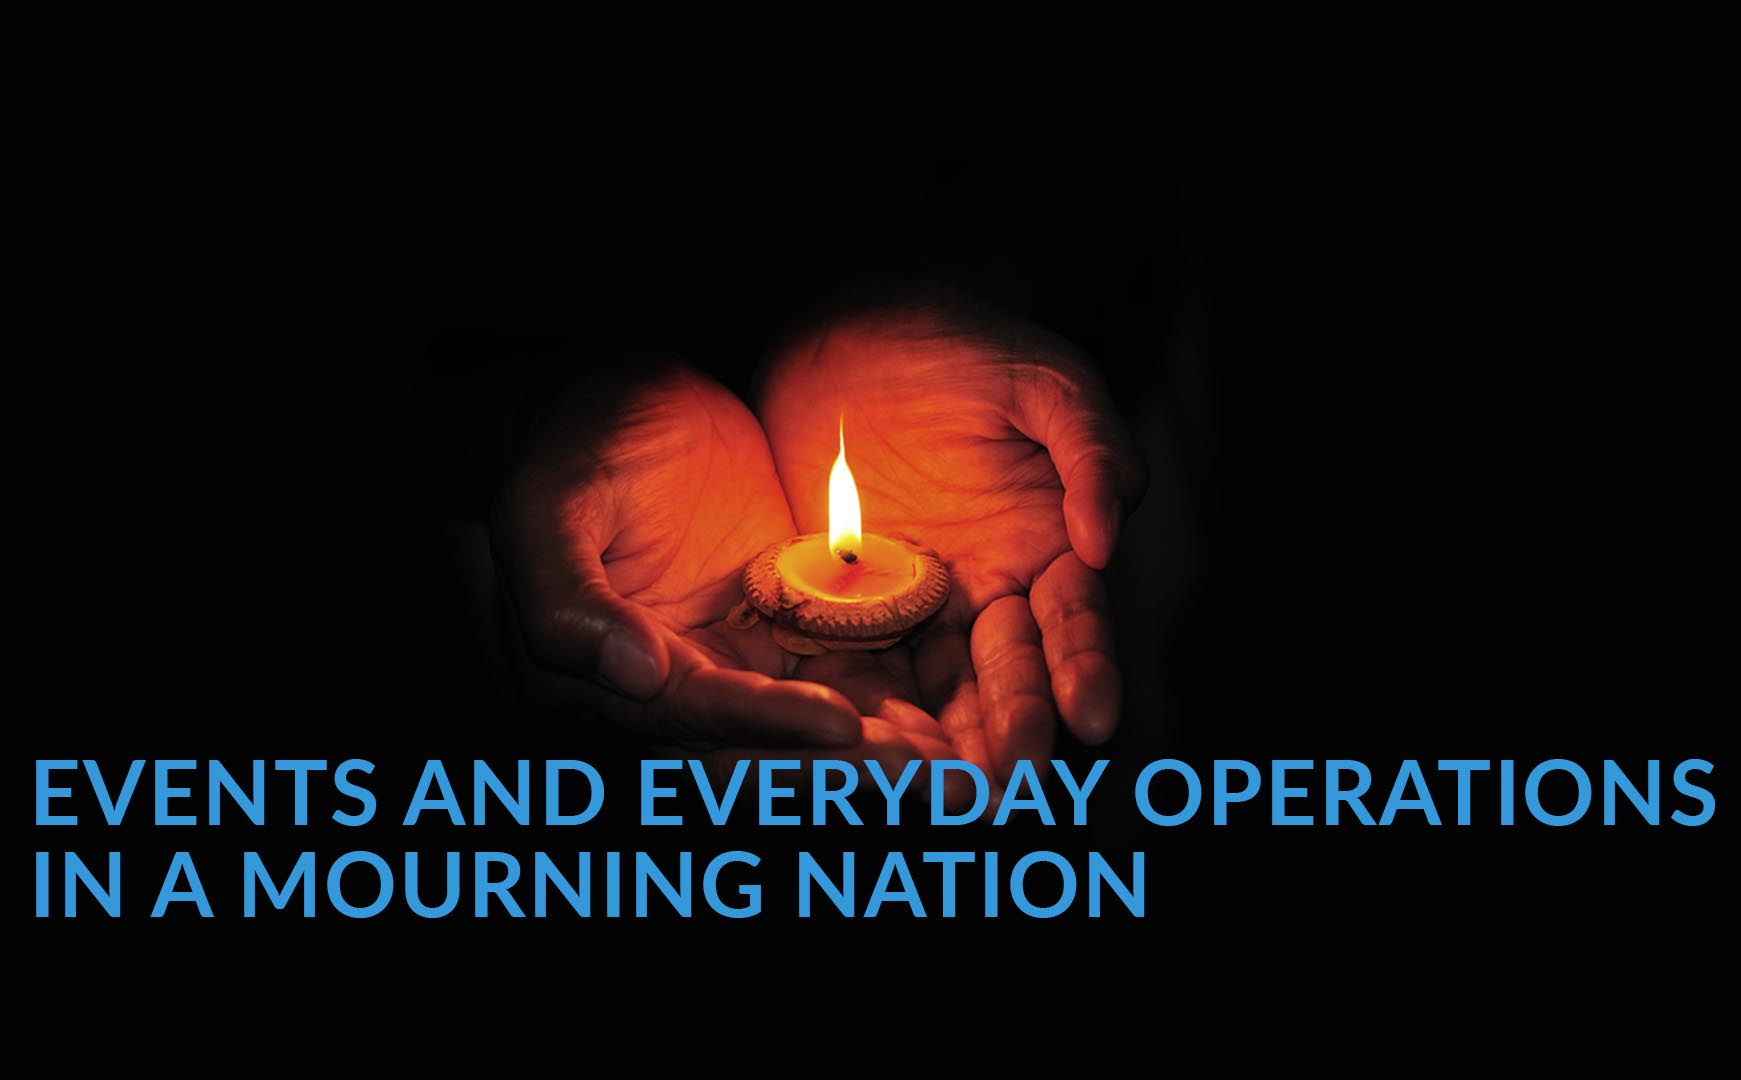 Events and Everyday Operations in a Mourning Nation